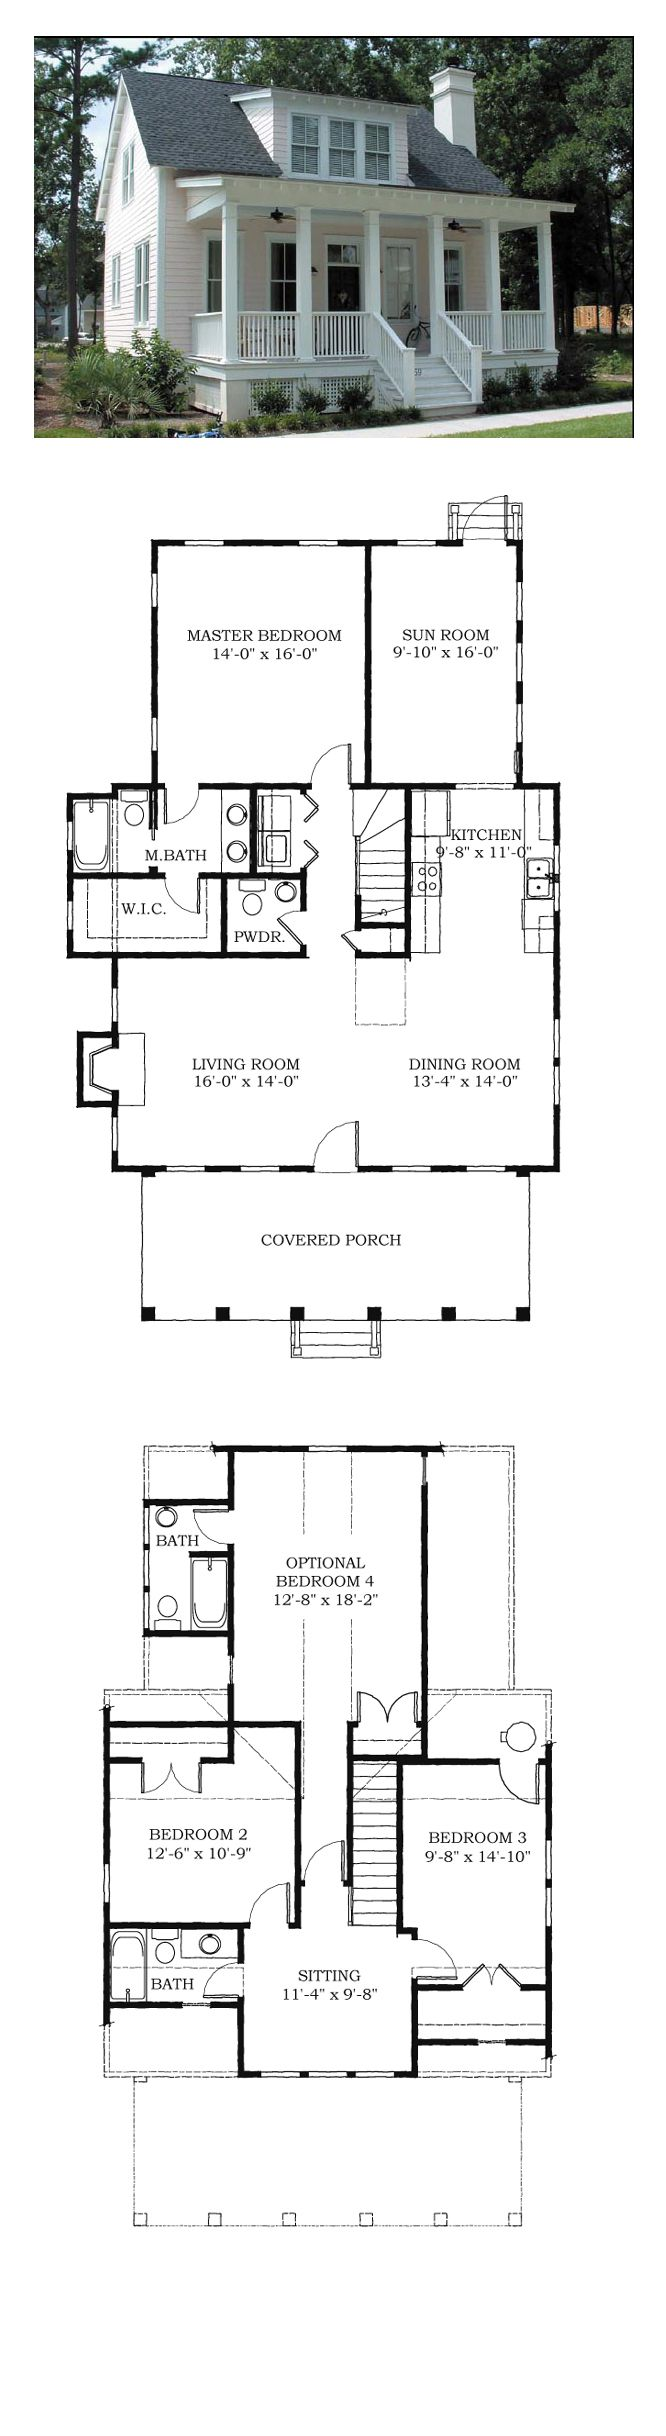 COOL House Plan ID: Chp 38703 | Total Living Area: 1783 Sq. Part 31